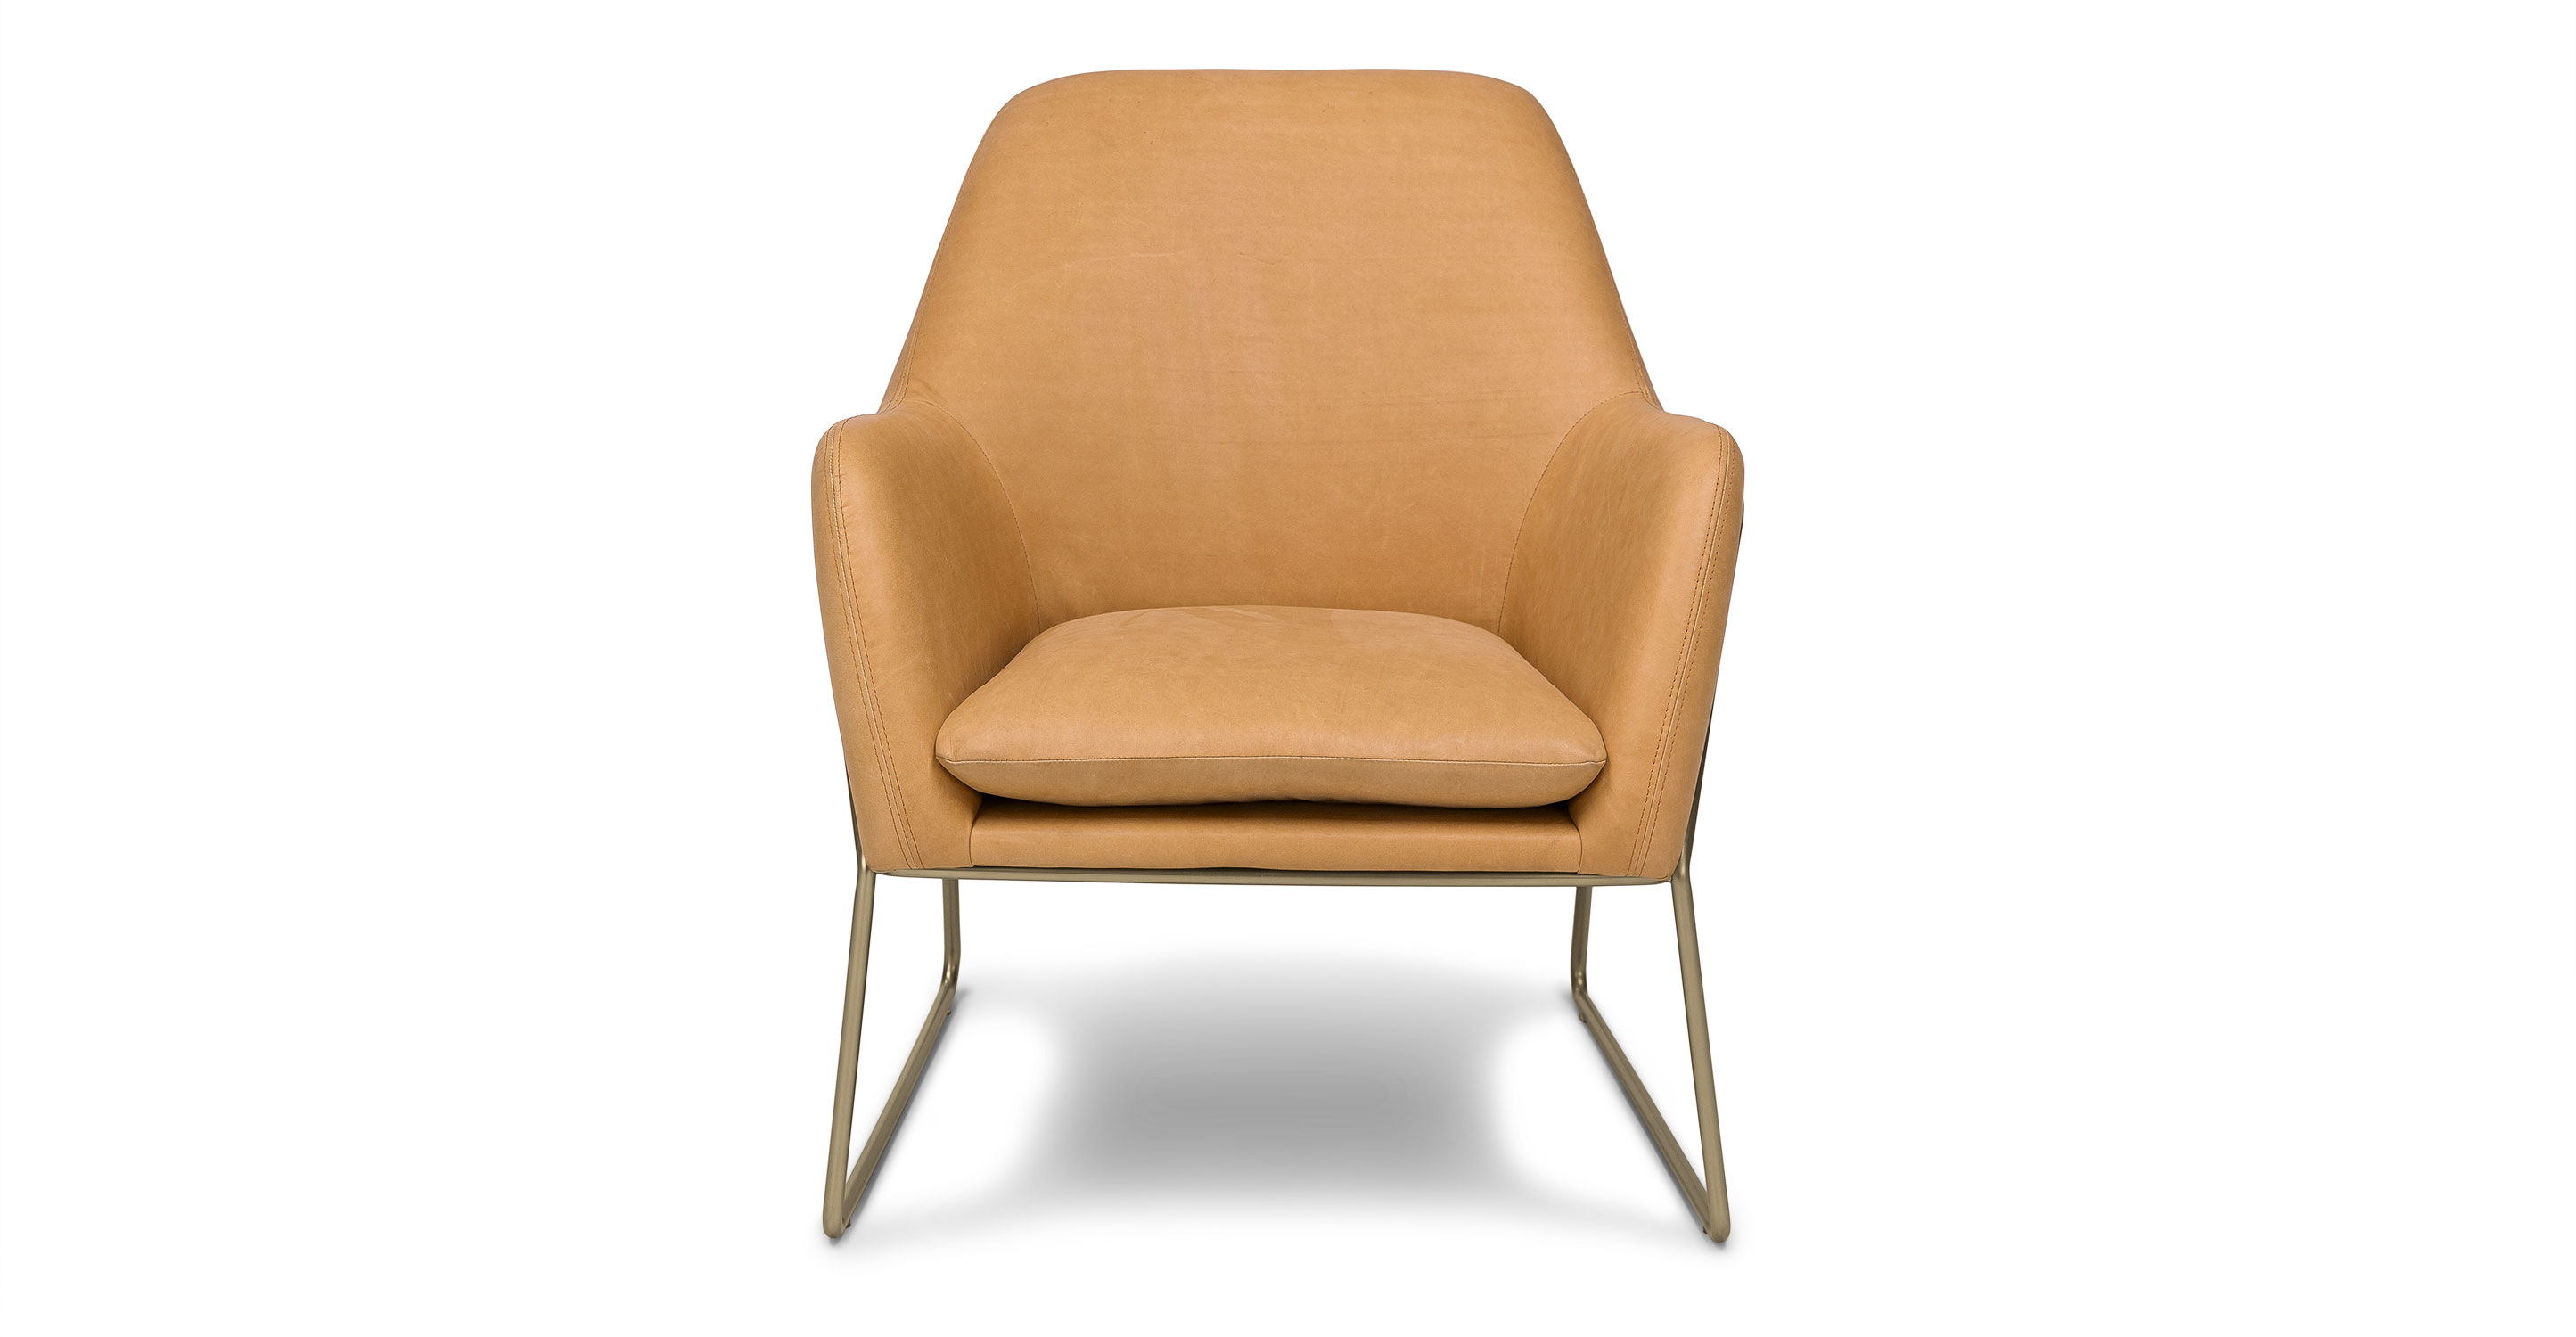 Forma Charme Blonde Chair Lounge Chairs Article